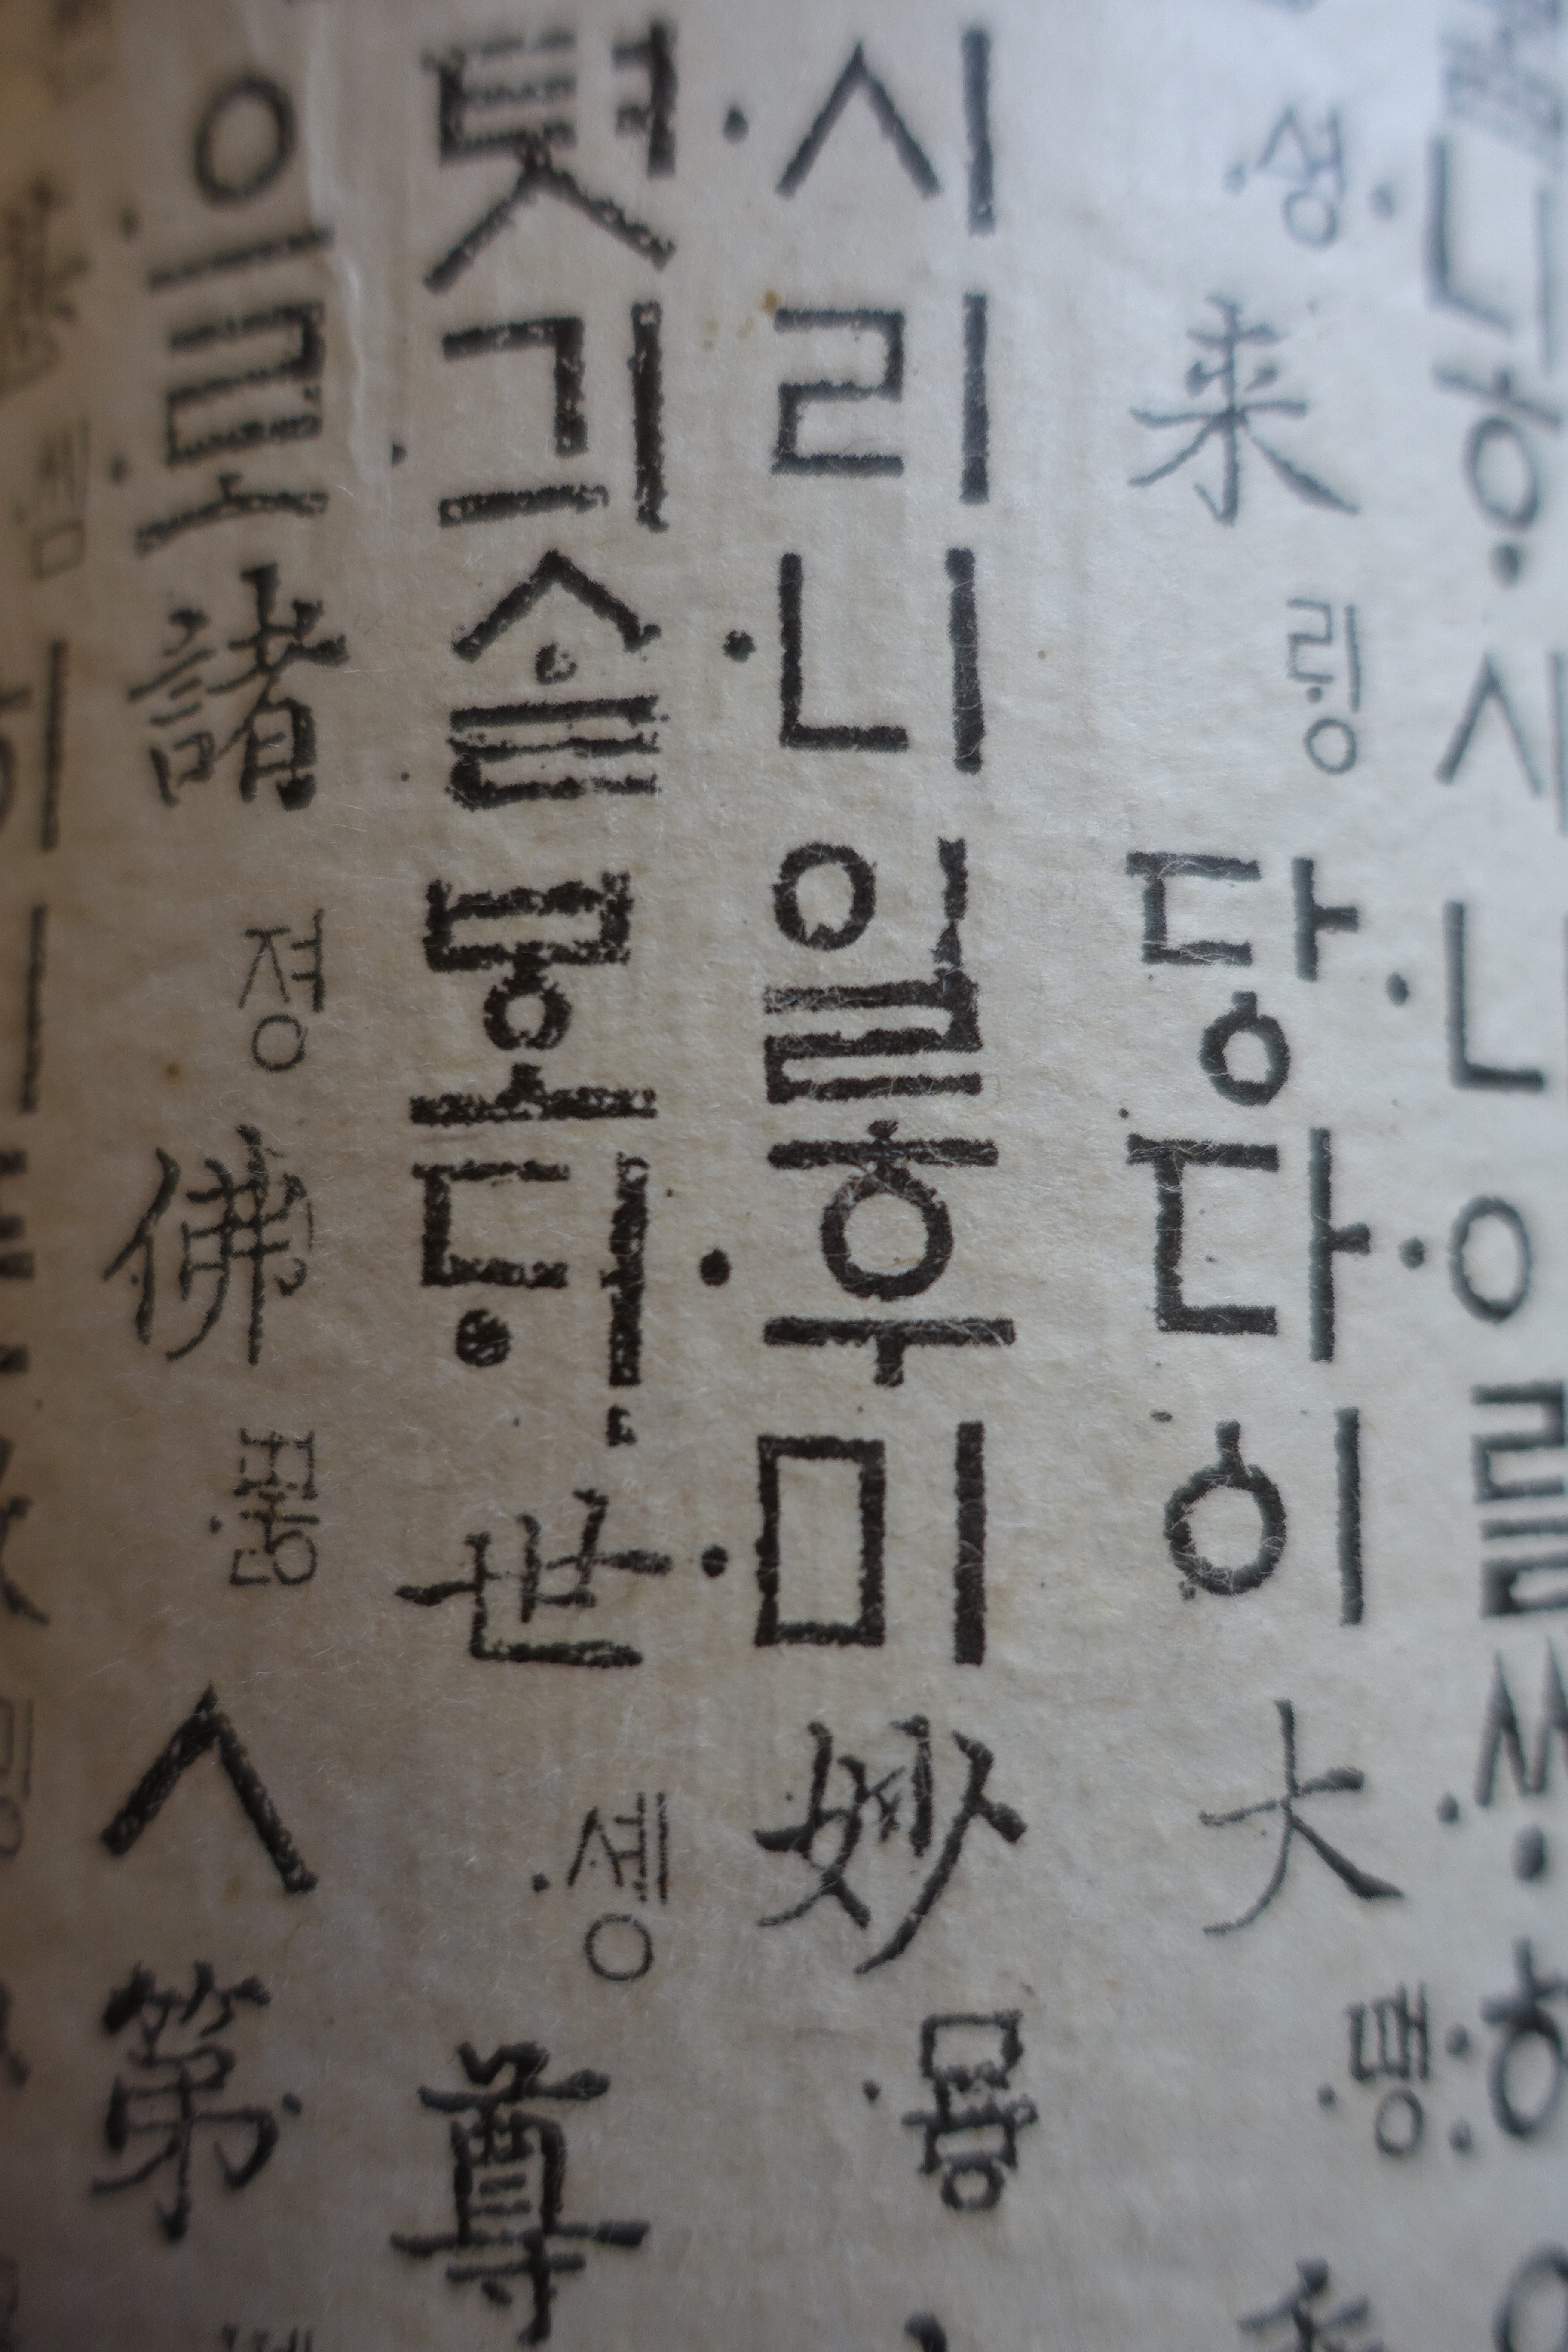 korean writing The korean language (south korean: 한국어 / 韓國語 hangugeo north korean: 조선말 / 朝鮮말 chosŏnmal) is an east asian language spoken by about 80 million people it is a member of the koreanic language family and is the official and national language of both koreas : north korea and south korea , with different standardized.